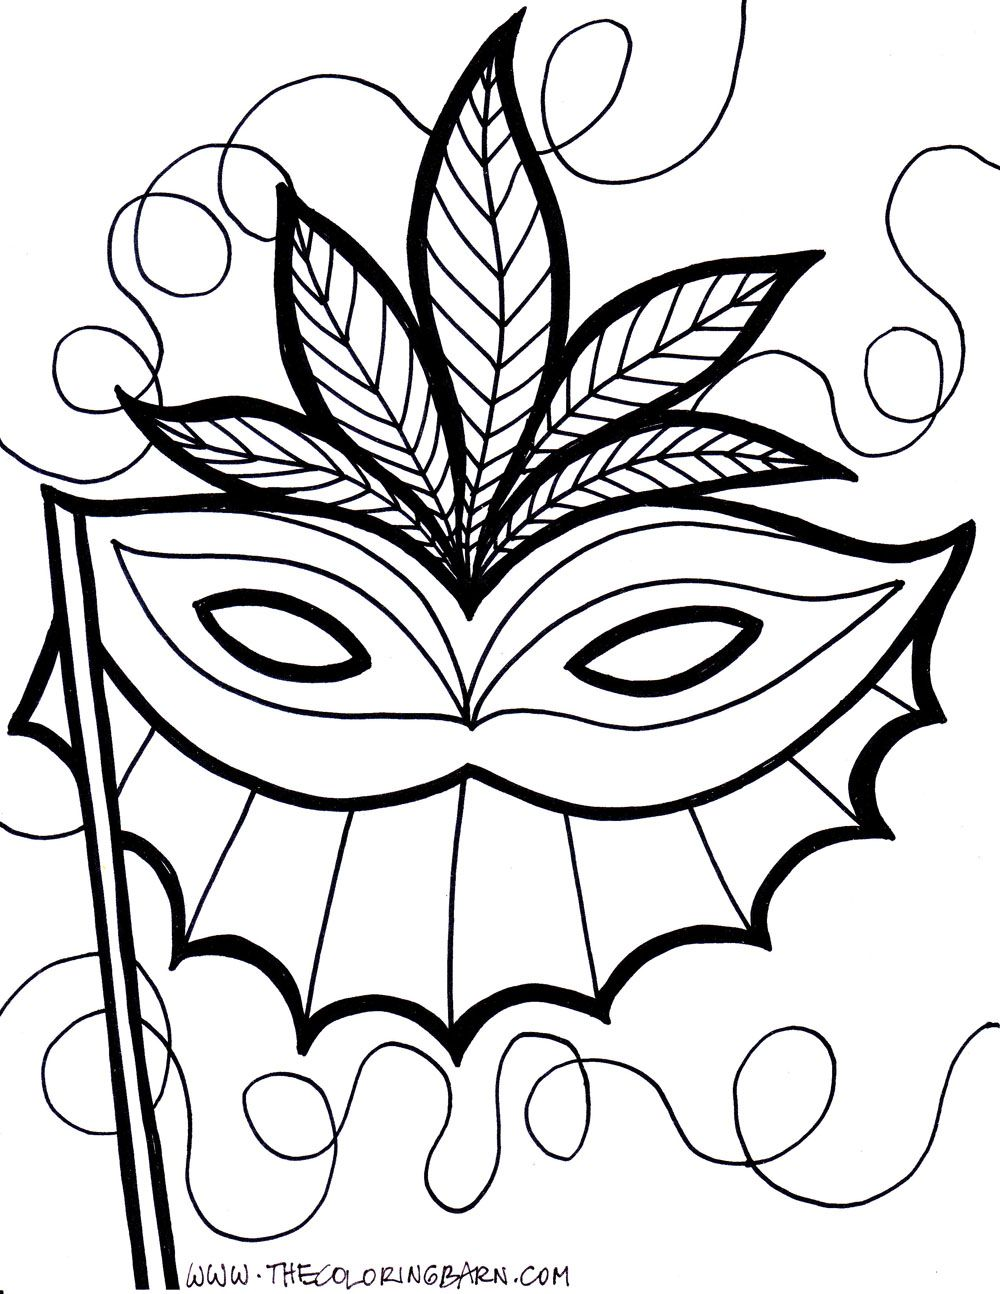 Uncategorized Printable Carnival Masks mardi gras coloring pages pictures imagixs cake page printable book sheet online